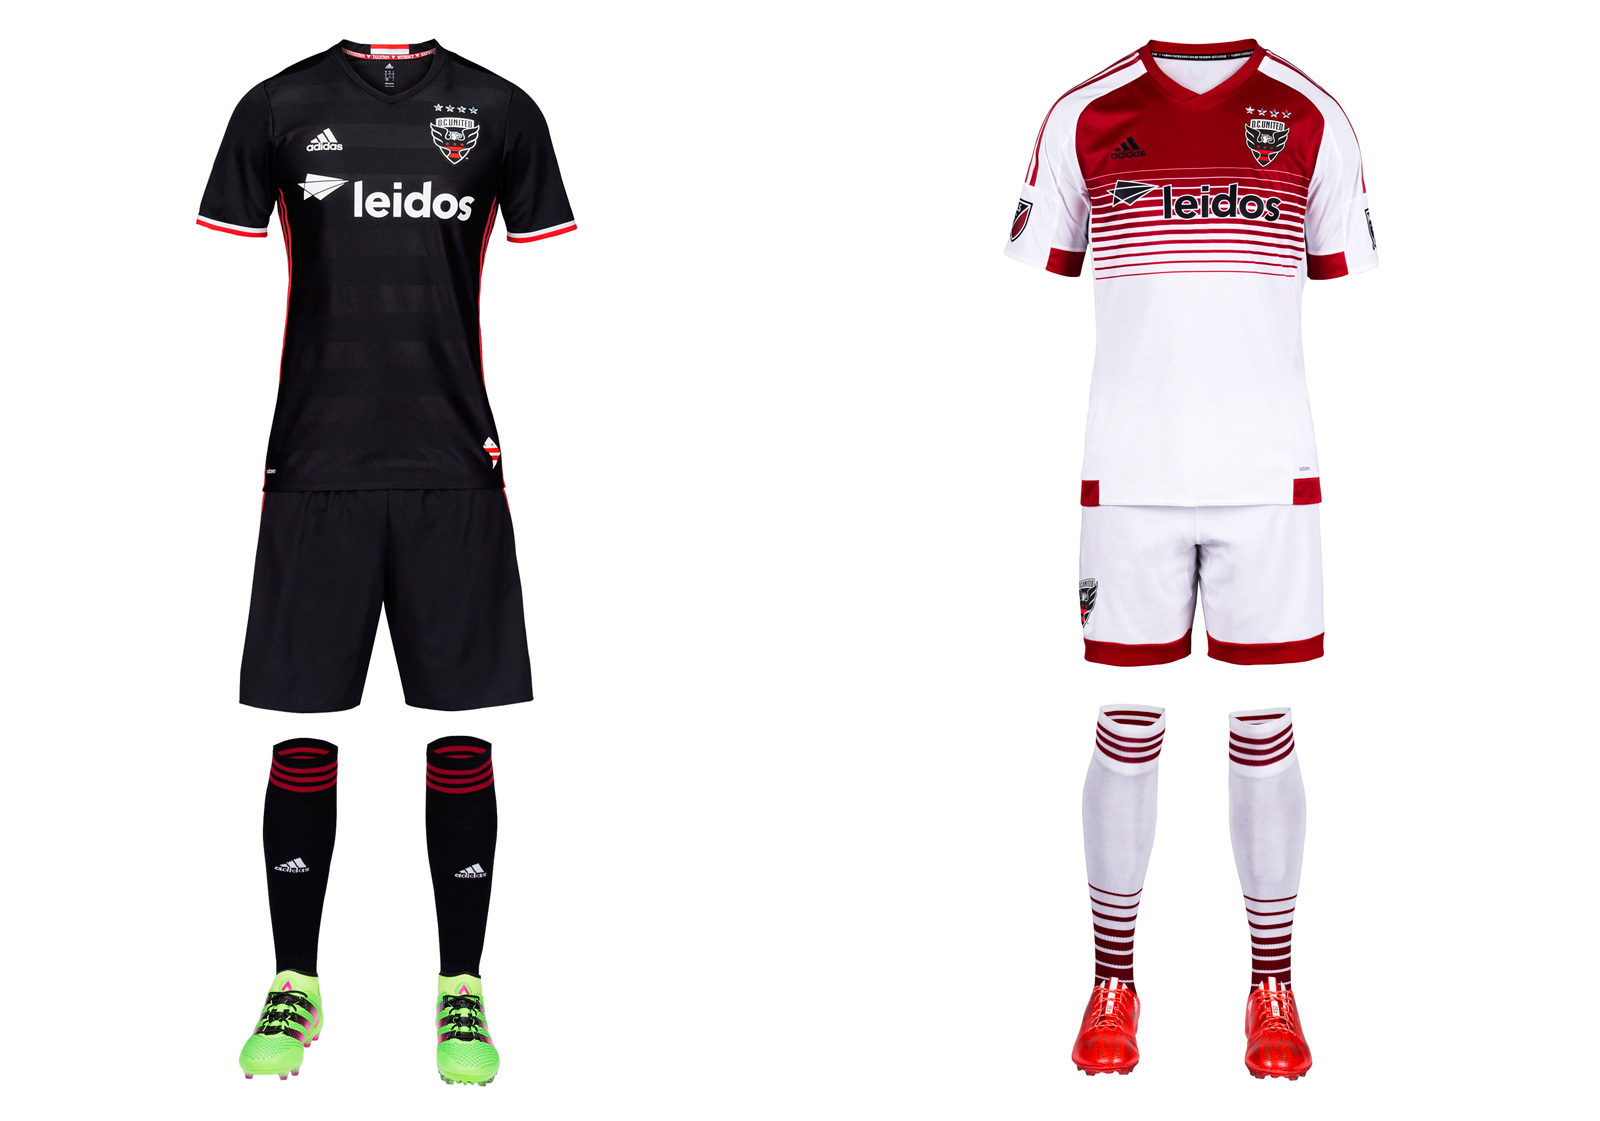 A new stadium in the nation's capital (scheduled to open in 2018) is preceded by a new club logo, United's first since 1998. We love the wings breaking through the shield and the redesigned font, but wish the stars on the city flag–which replaces the old ball and championship star–were a bit larger. They're lost on the black background. The new home kit maintains the club's classic, all-black brand and the sad absence of the white chest stripes that adorned the most iconic uniform in MLS history. There must be a way to bring those back.